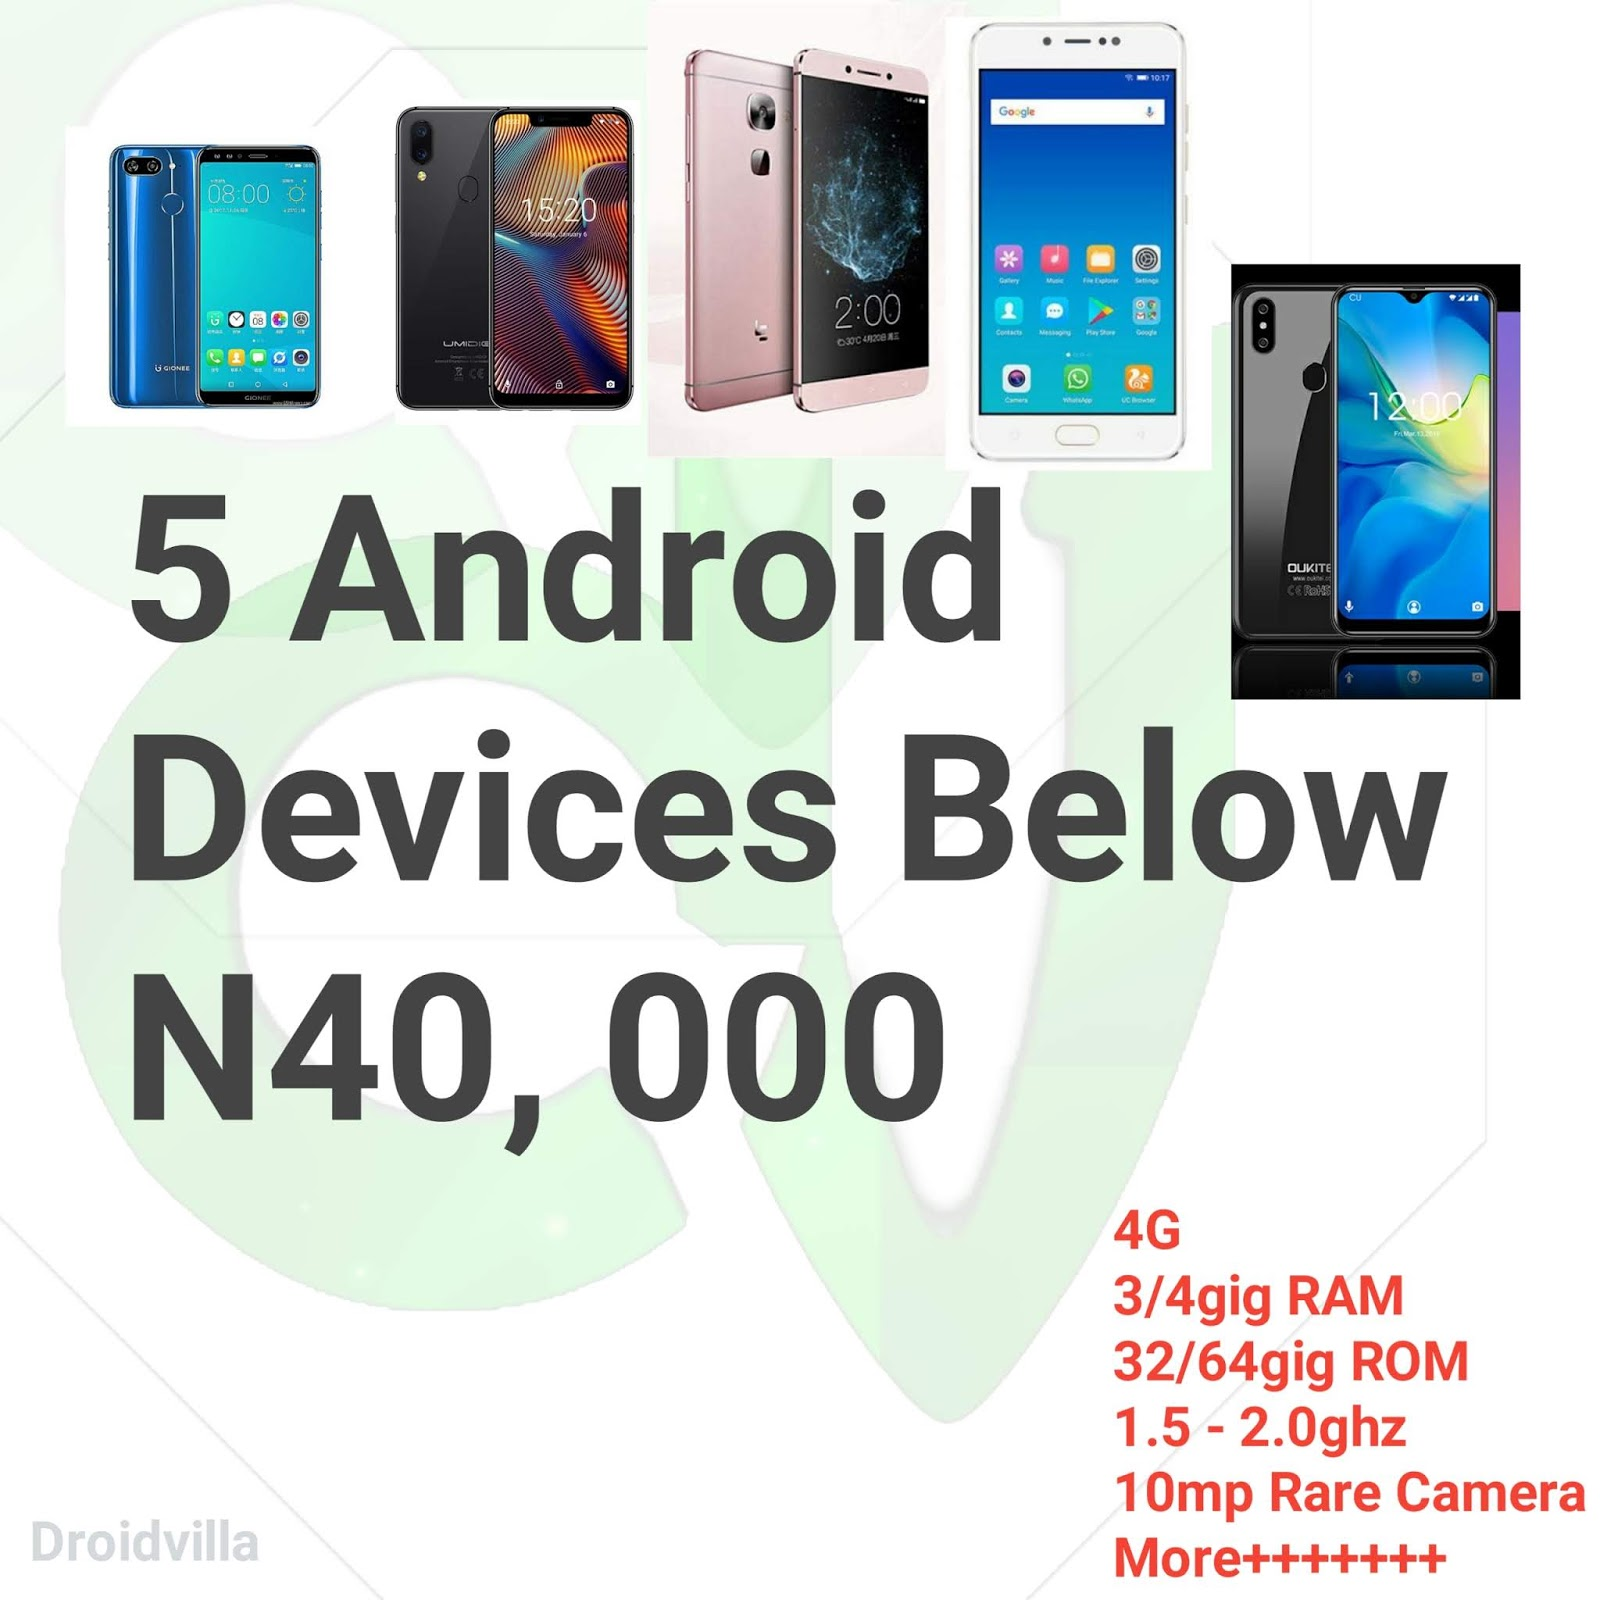 5 Best Cheap Android Phones With 4G, 3/4gig RAM and 32/64ROM below N40, 000 In Nigeria 2019